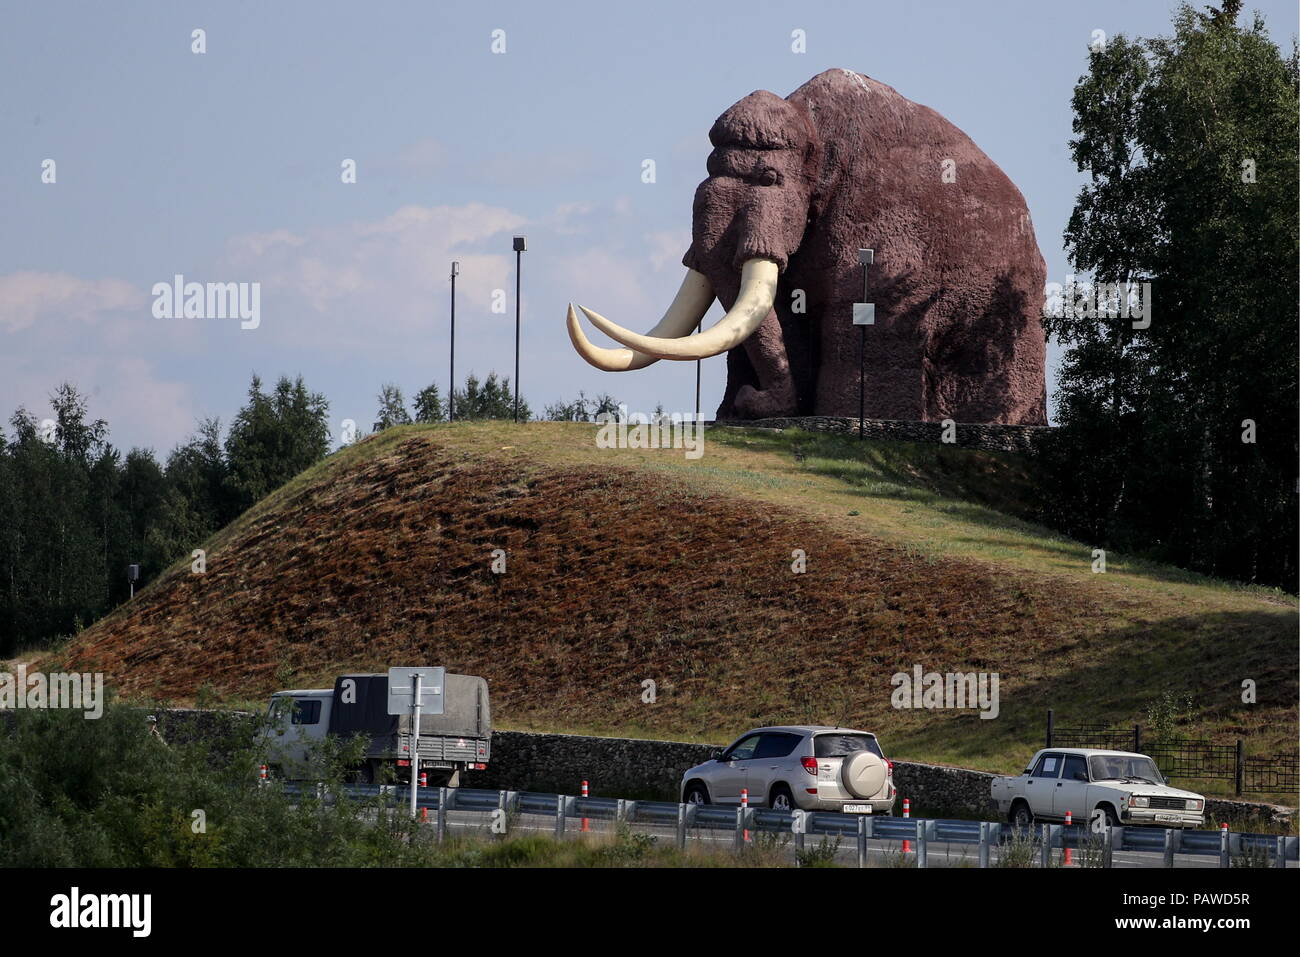 Russia 23rd July 2018 Salekhard Russia July 23 2018 A 10 Metre Woolly Mammoth Statue In